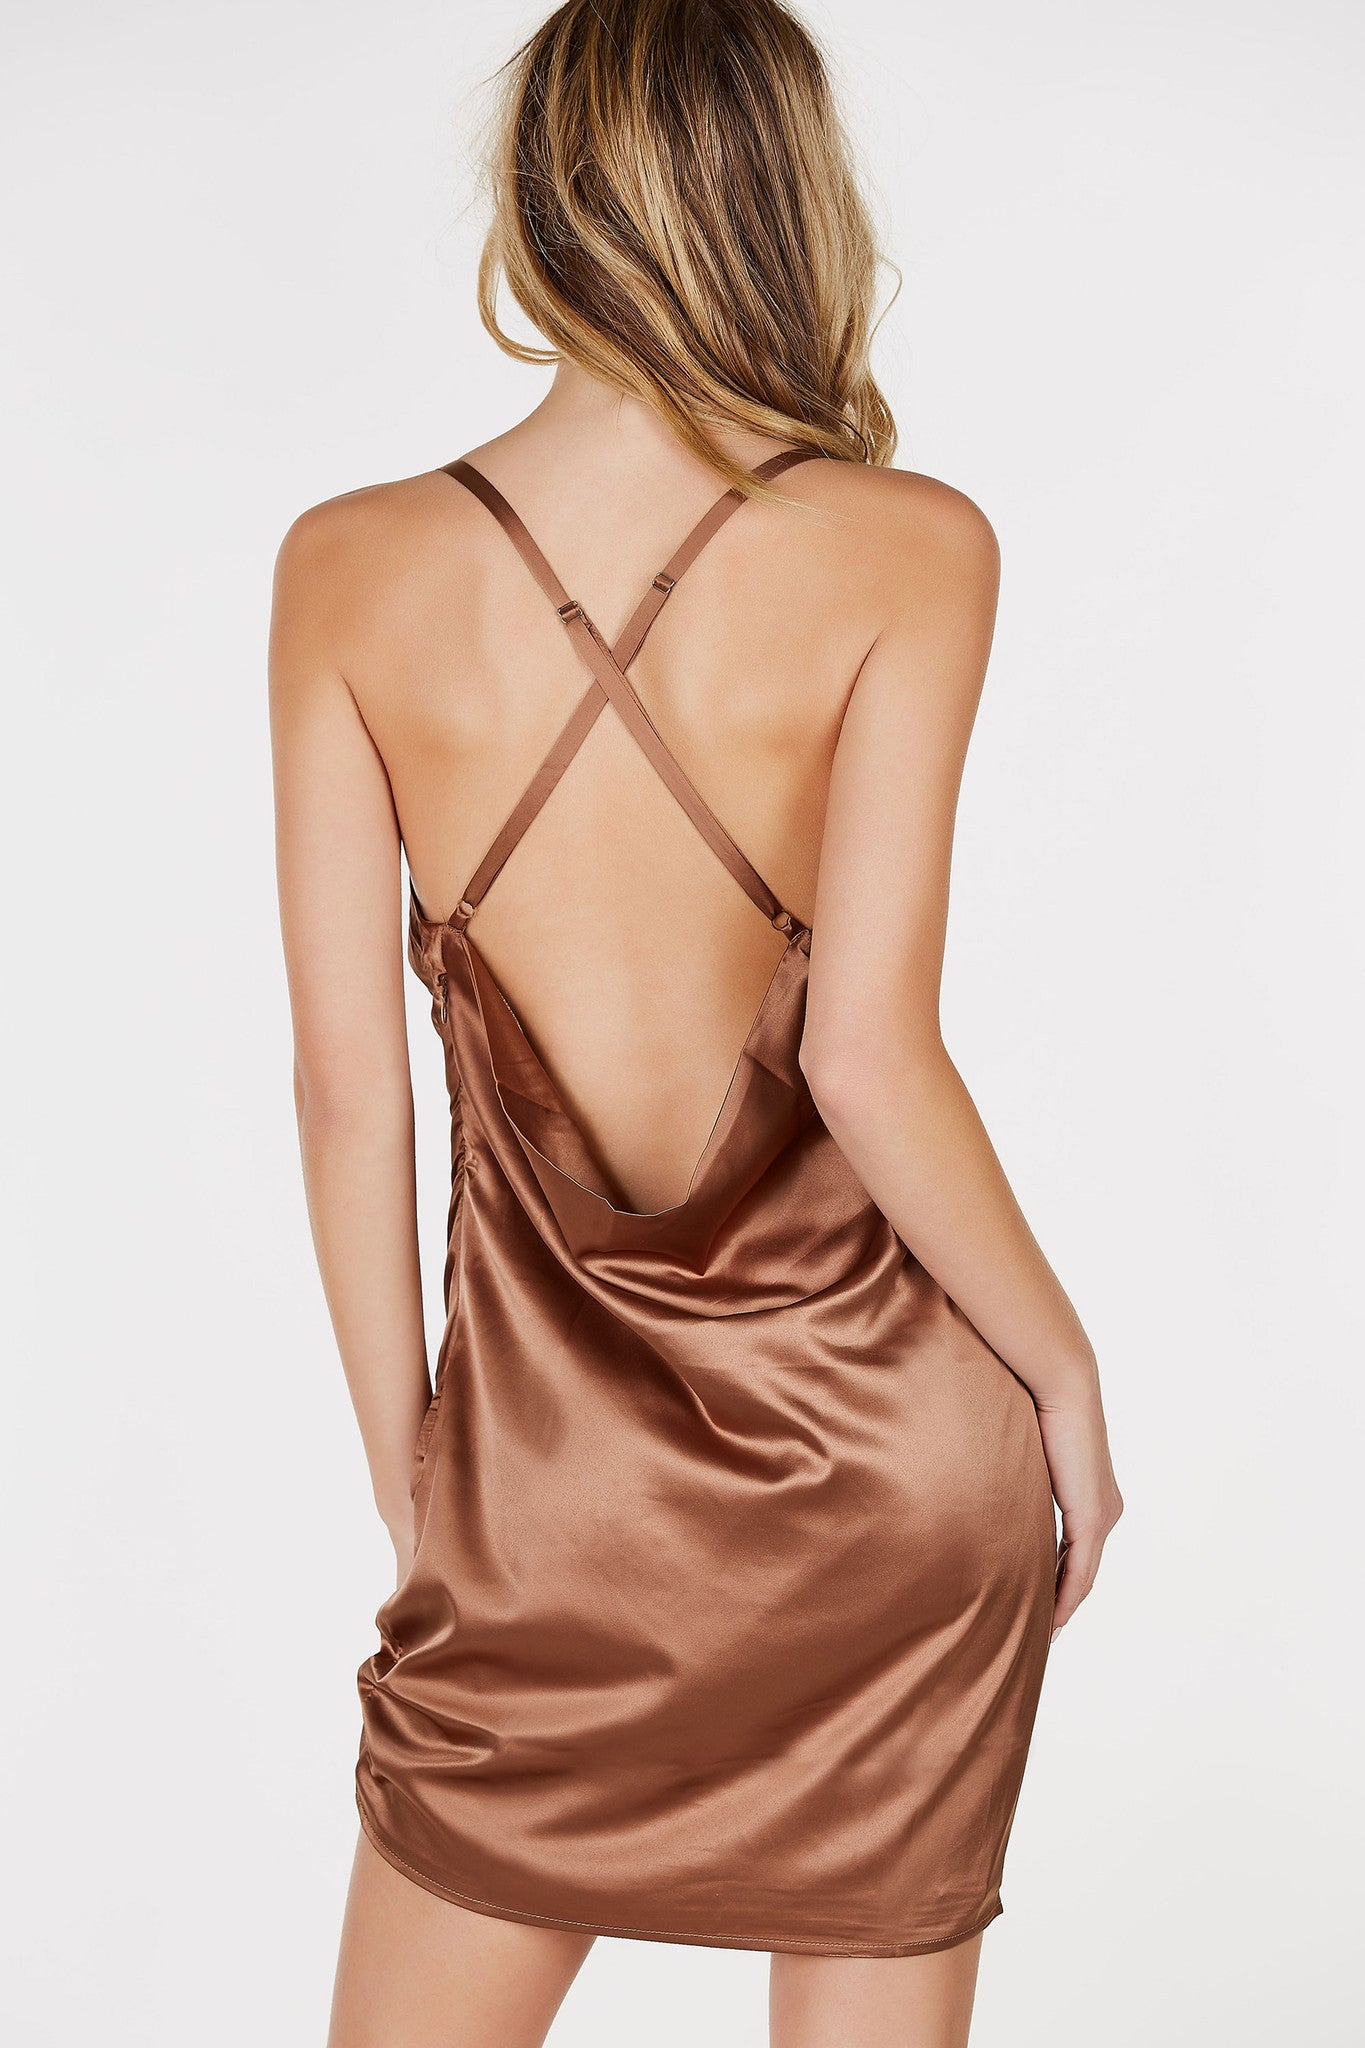 /Low neckline with draped finish/X-back design/Adjustable shoulder straps/Fully lined/Straight hem